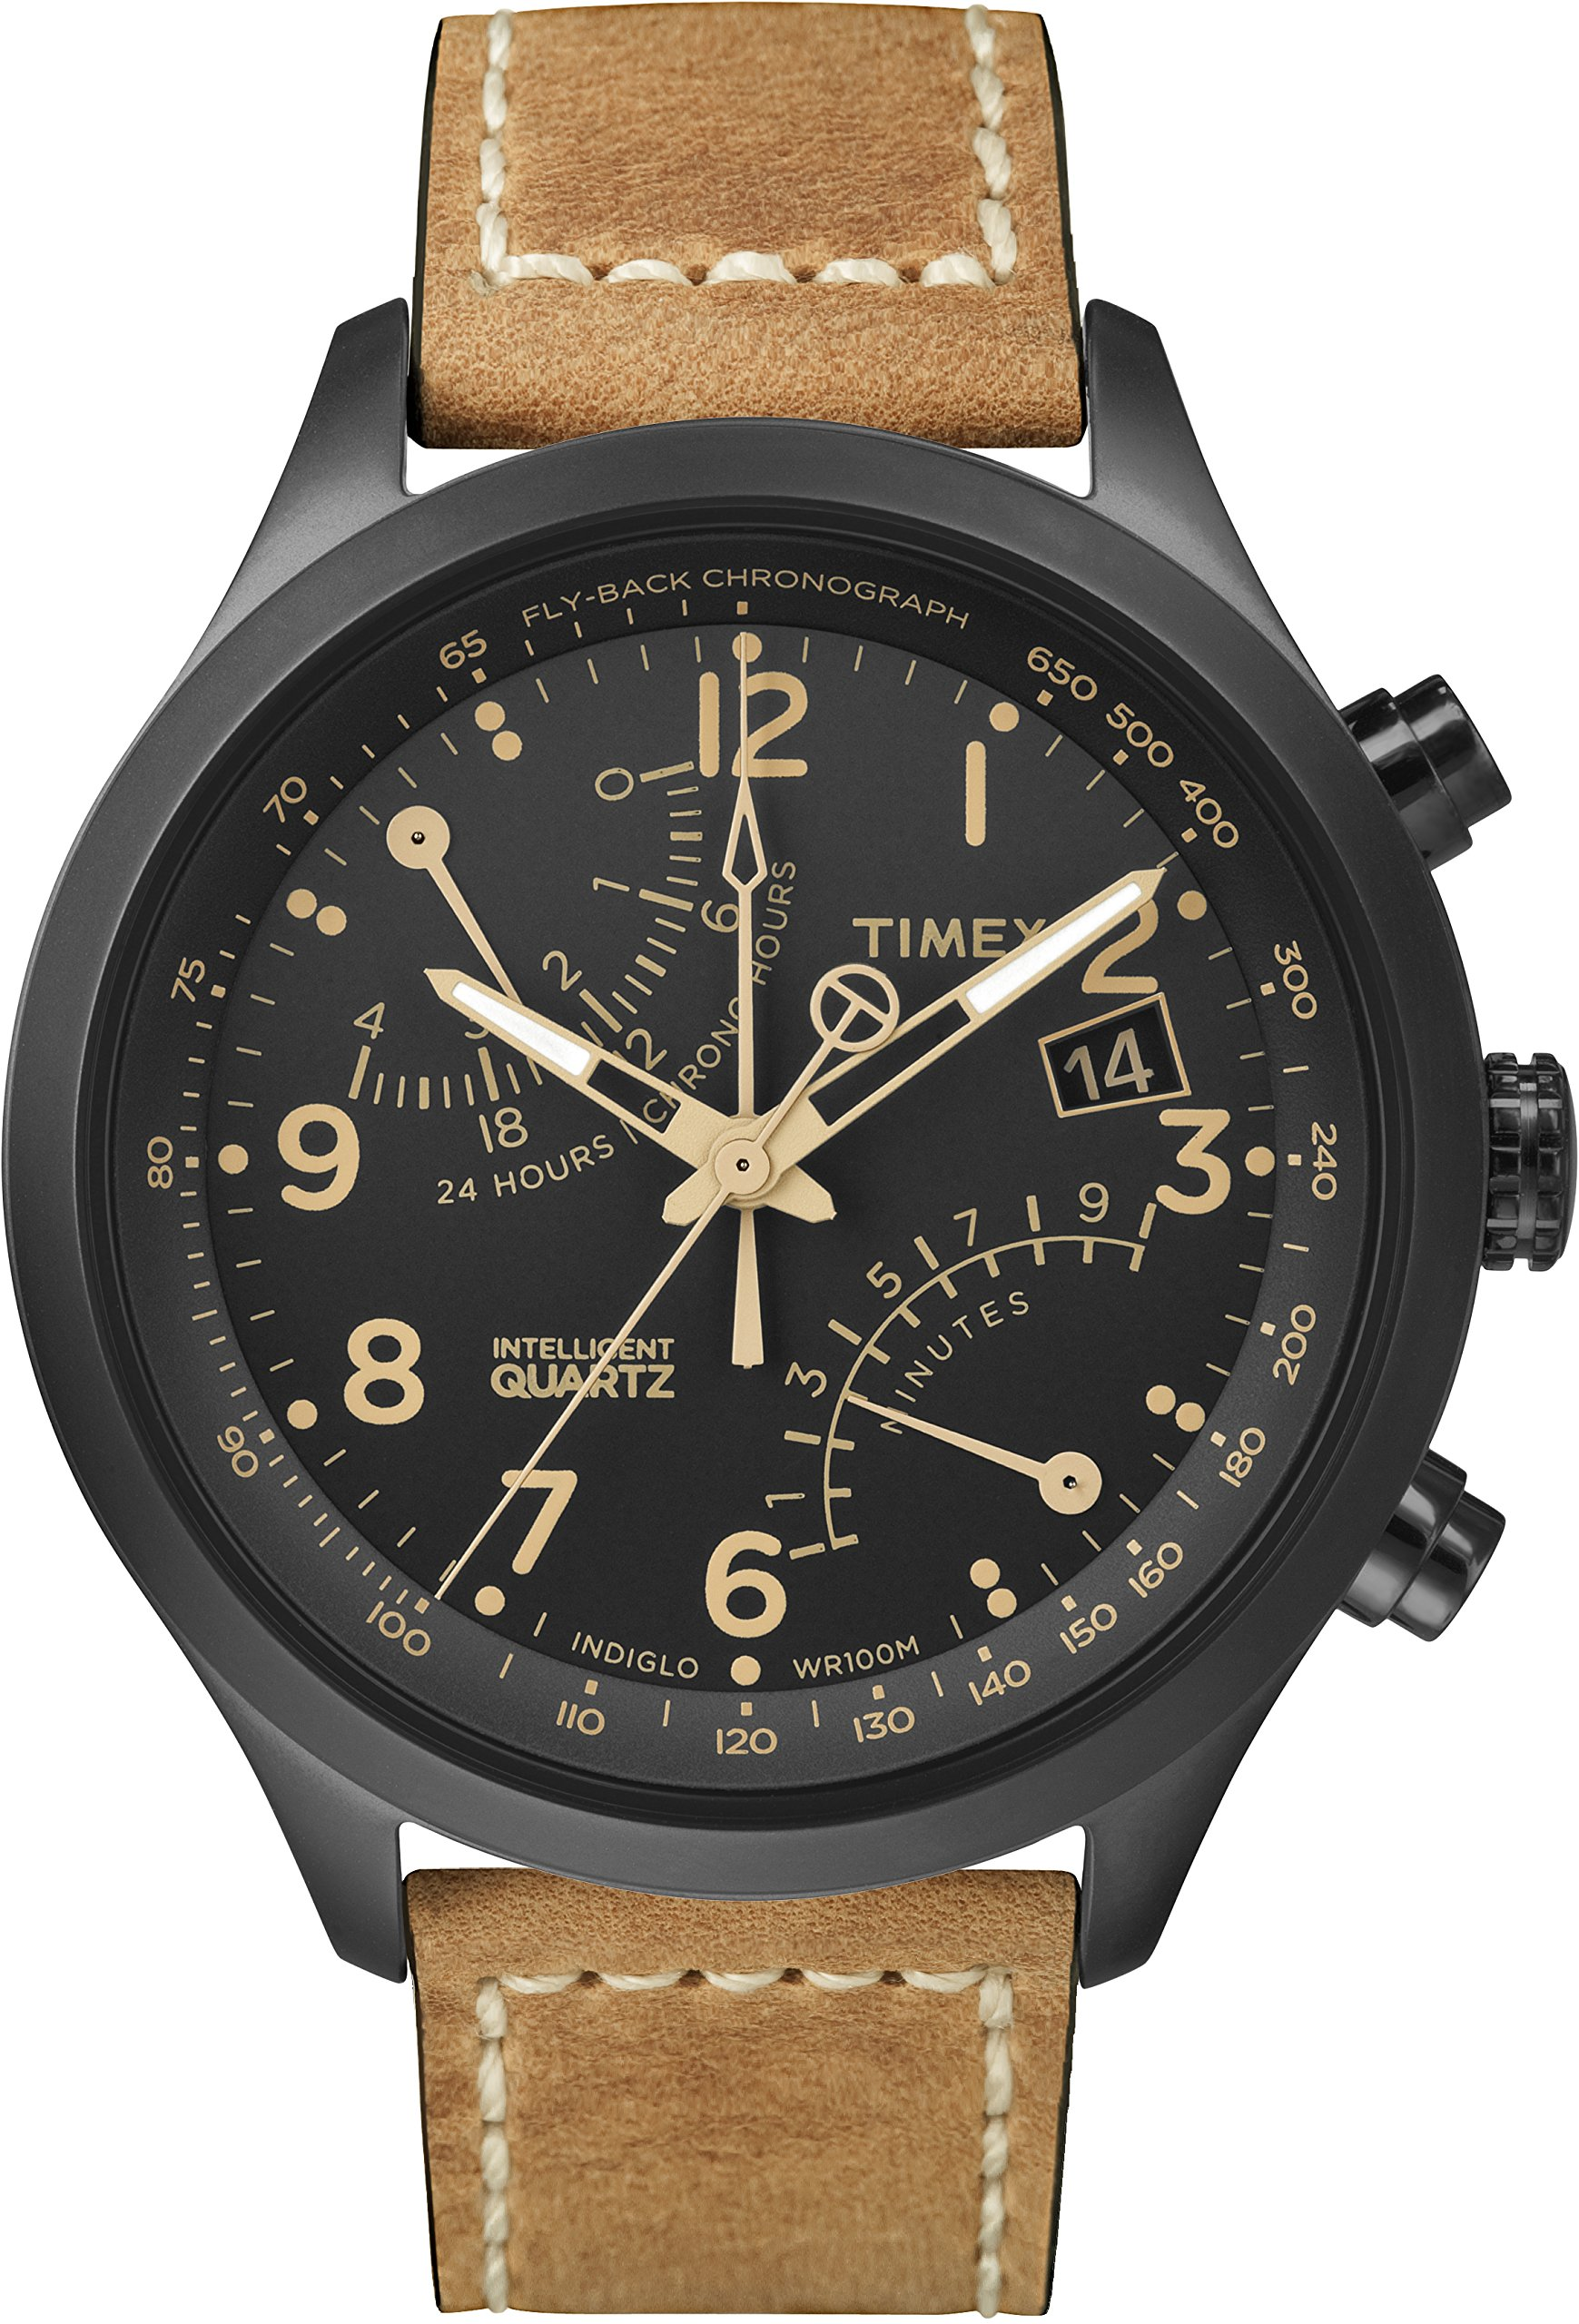 Timex Men's Intelligent Quartz Watch with Dial Fly-Back Chronograph Display and Leather Strap